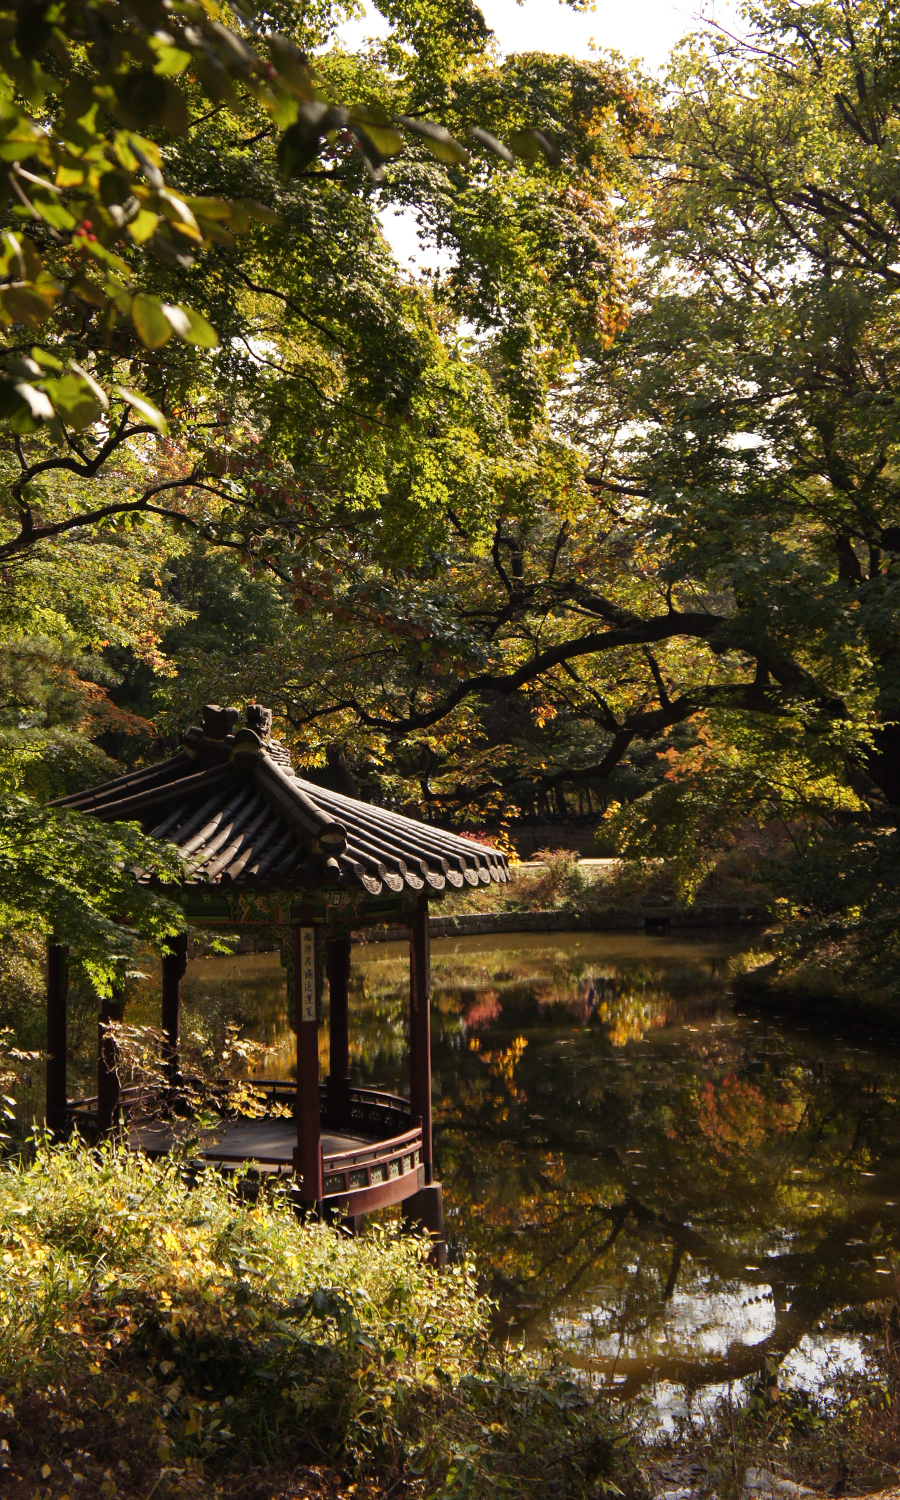 2014-seoul-korea-changdeokgung-palace-secret-garden-biwon-09